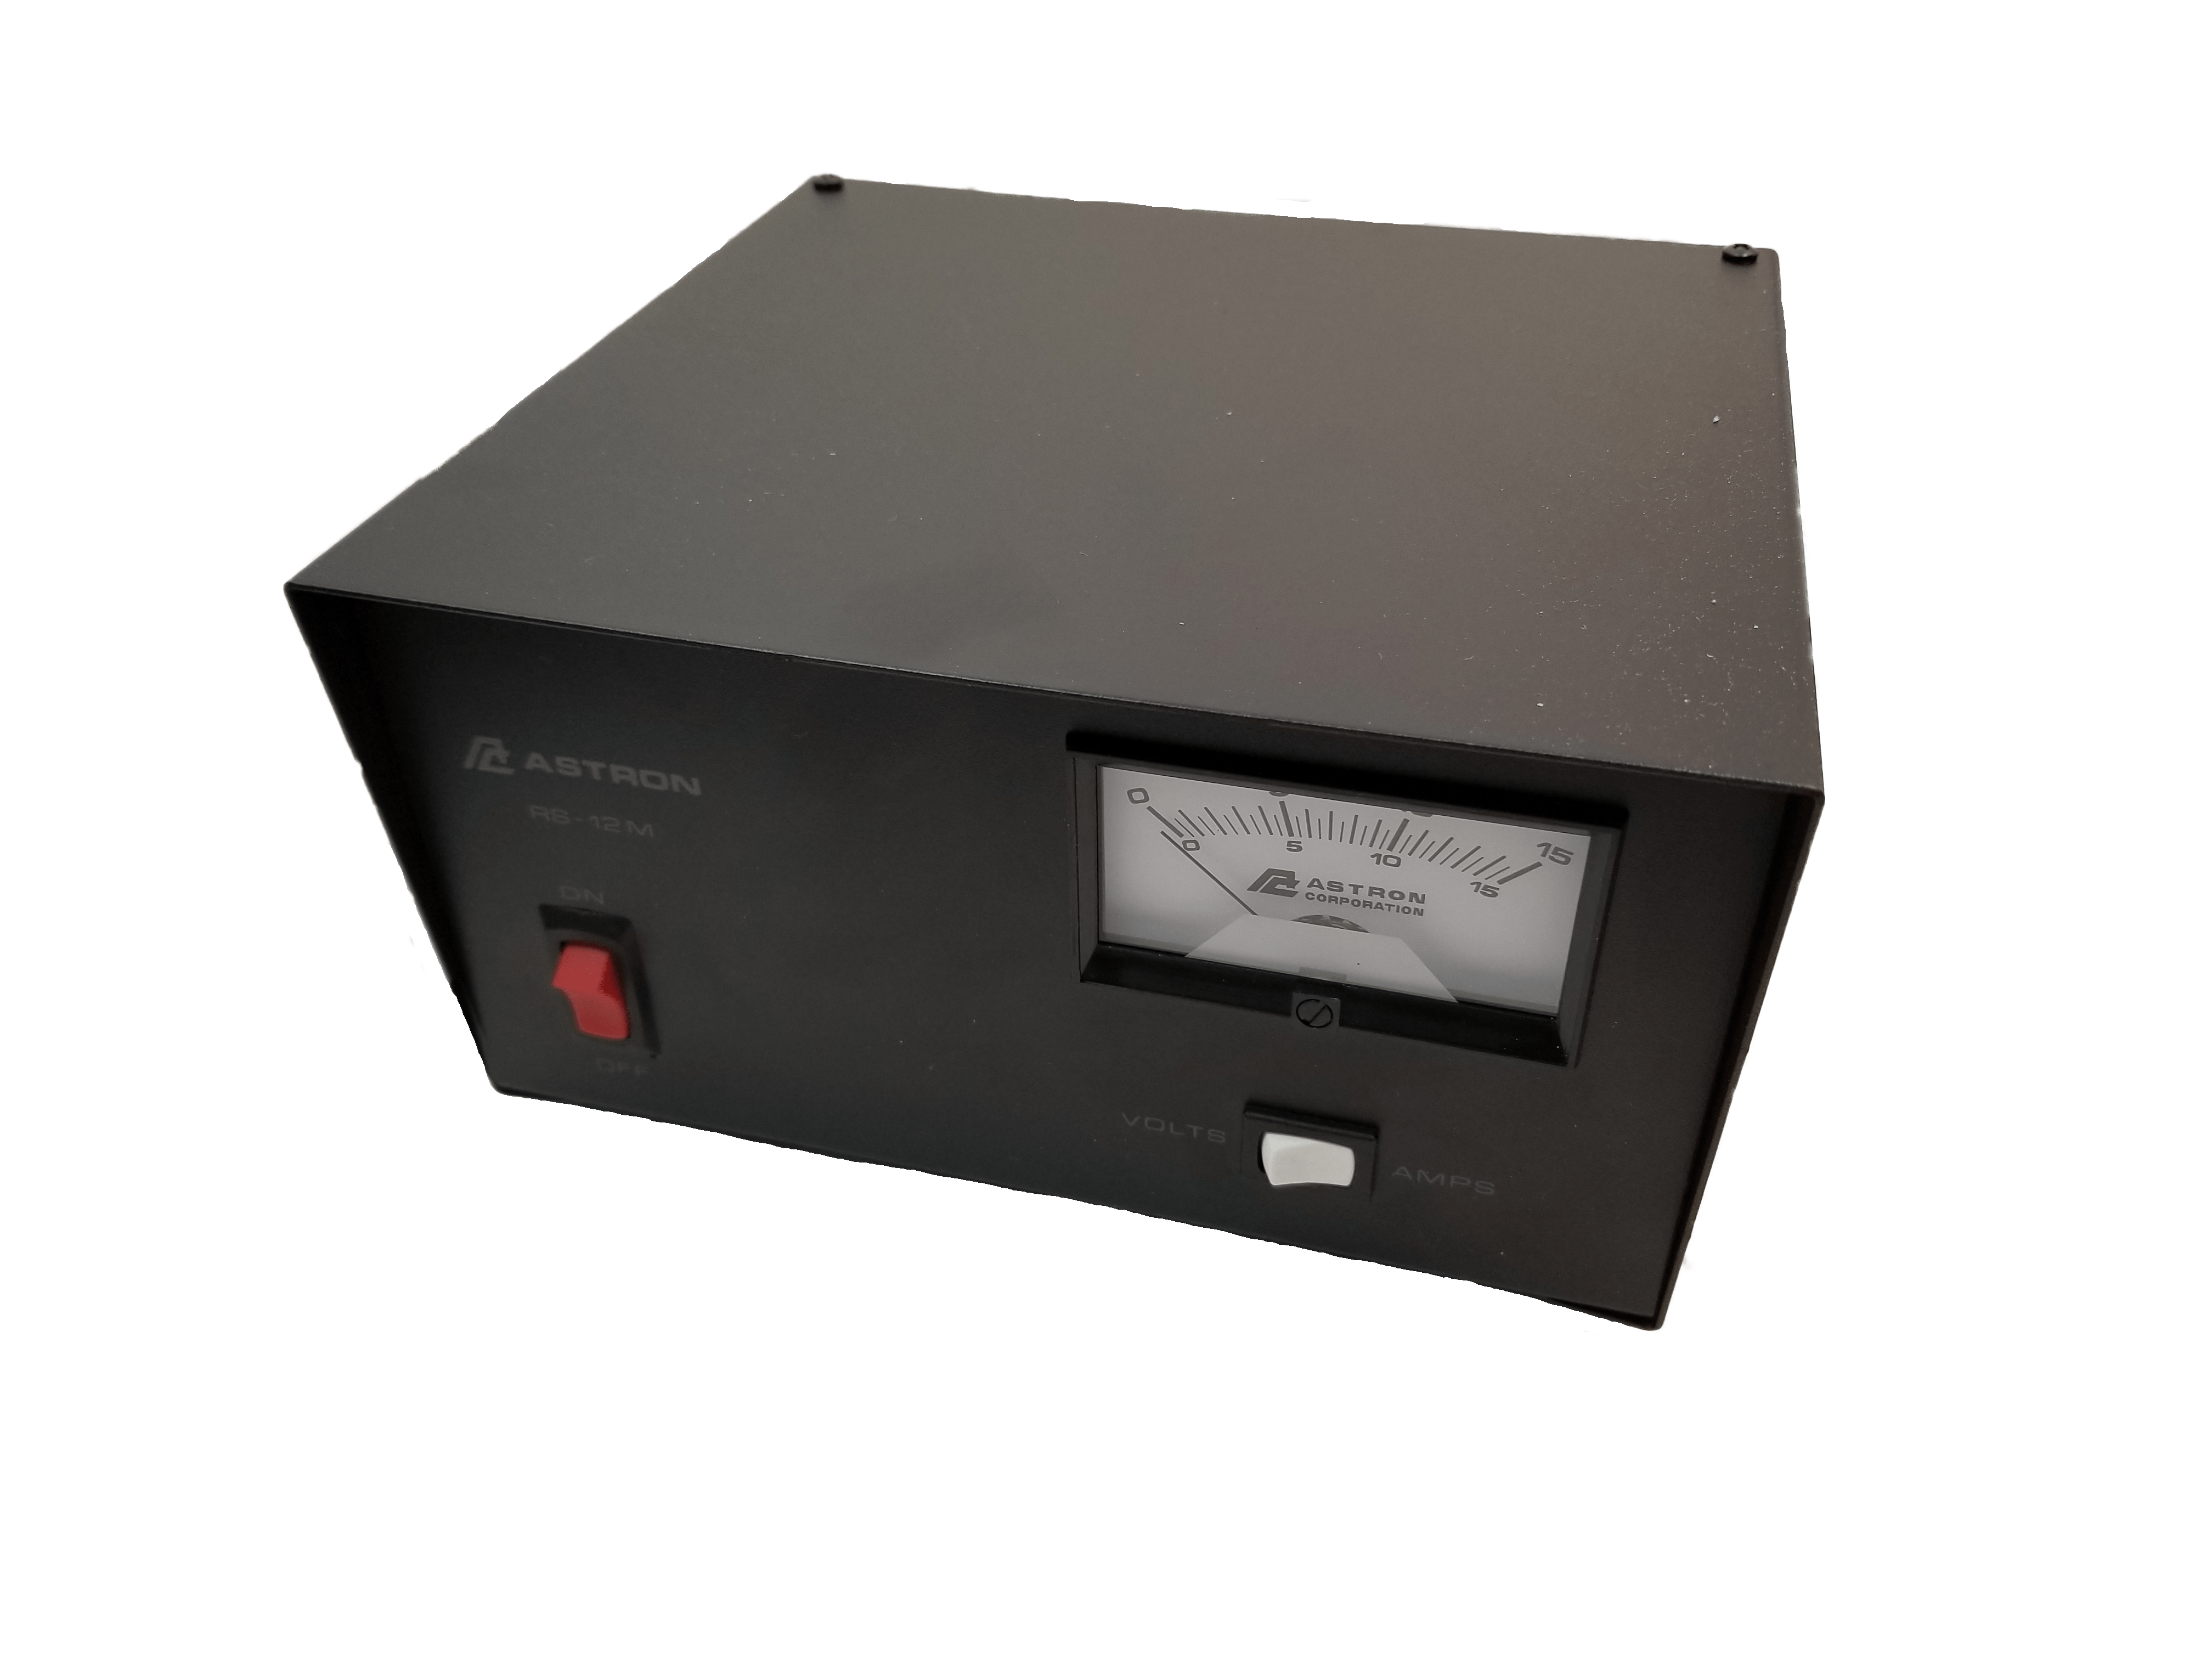 RS12M - Astron 12 Amp Power Supply W/Meter